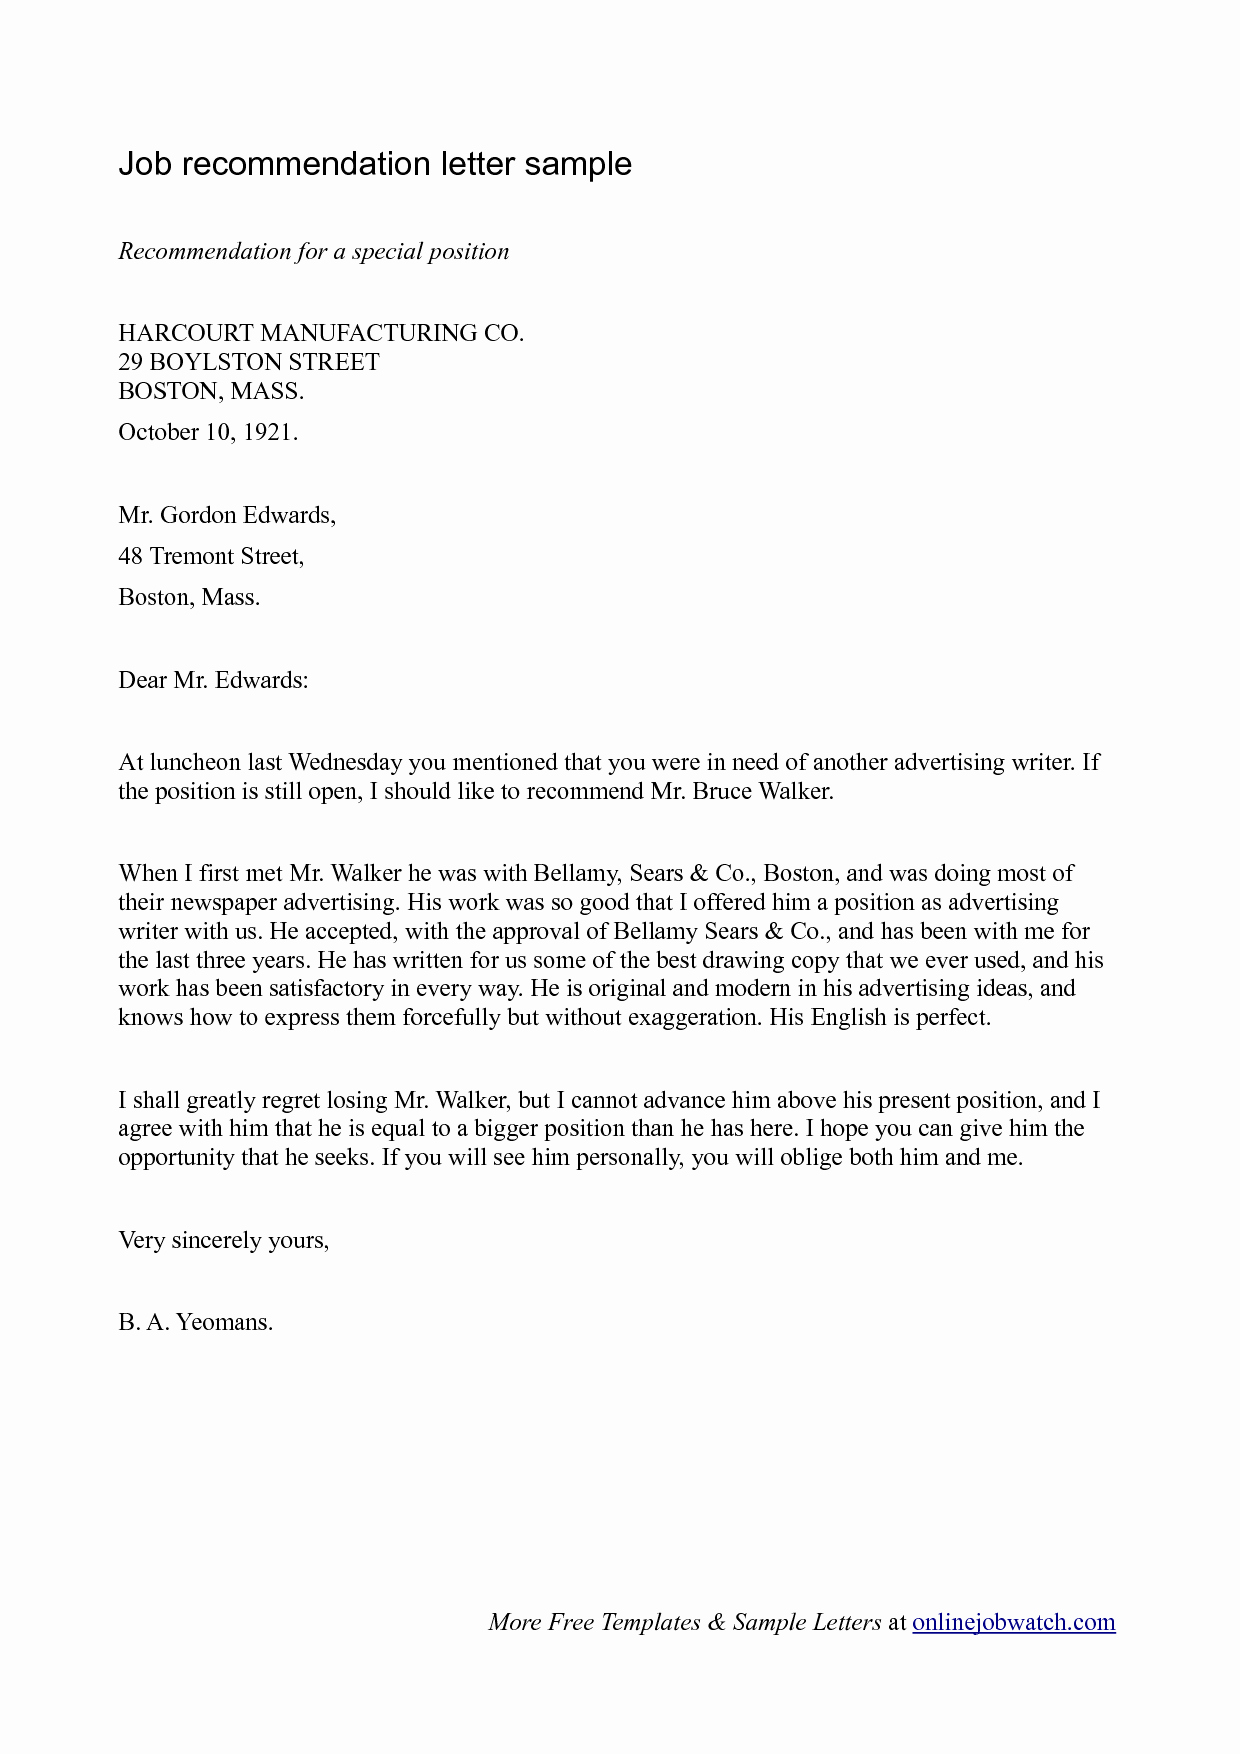 Recommendation Letter Template for Job Best Of Simple Guide Professional Reference Letter with Samples